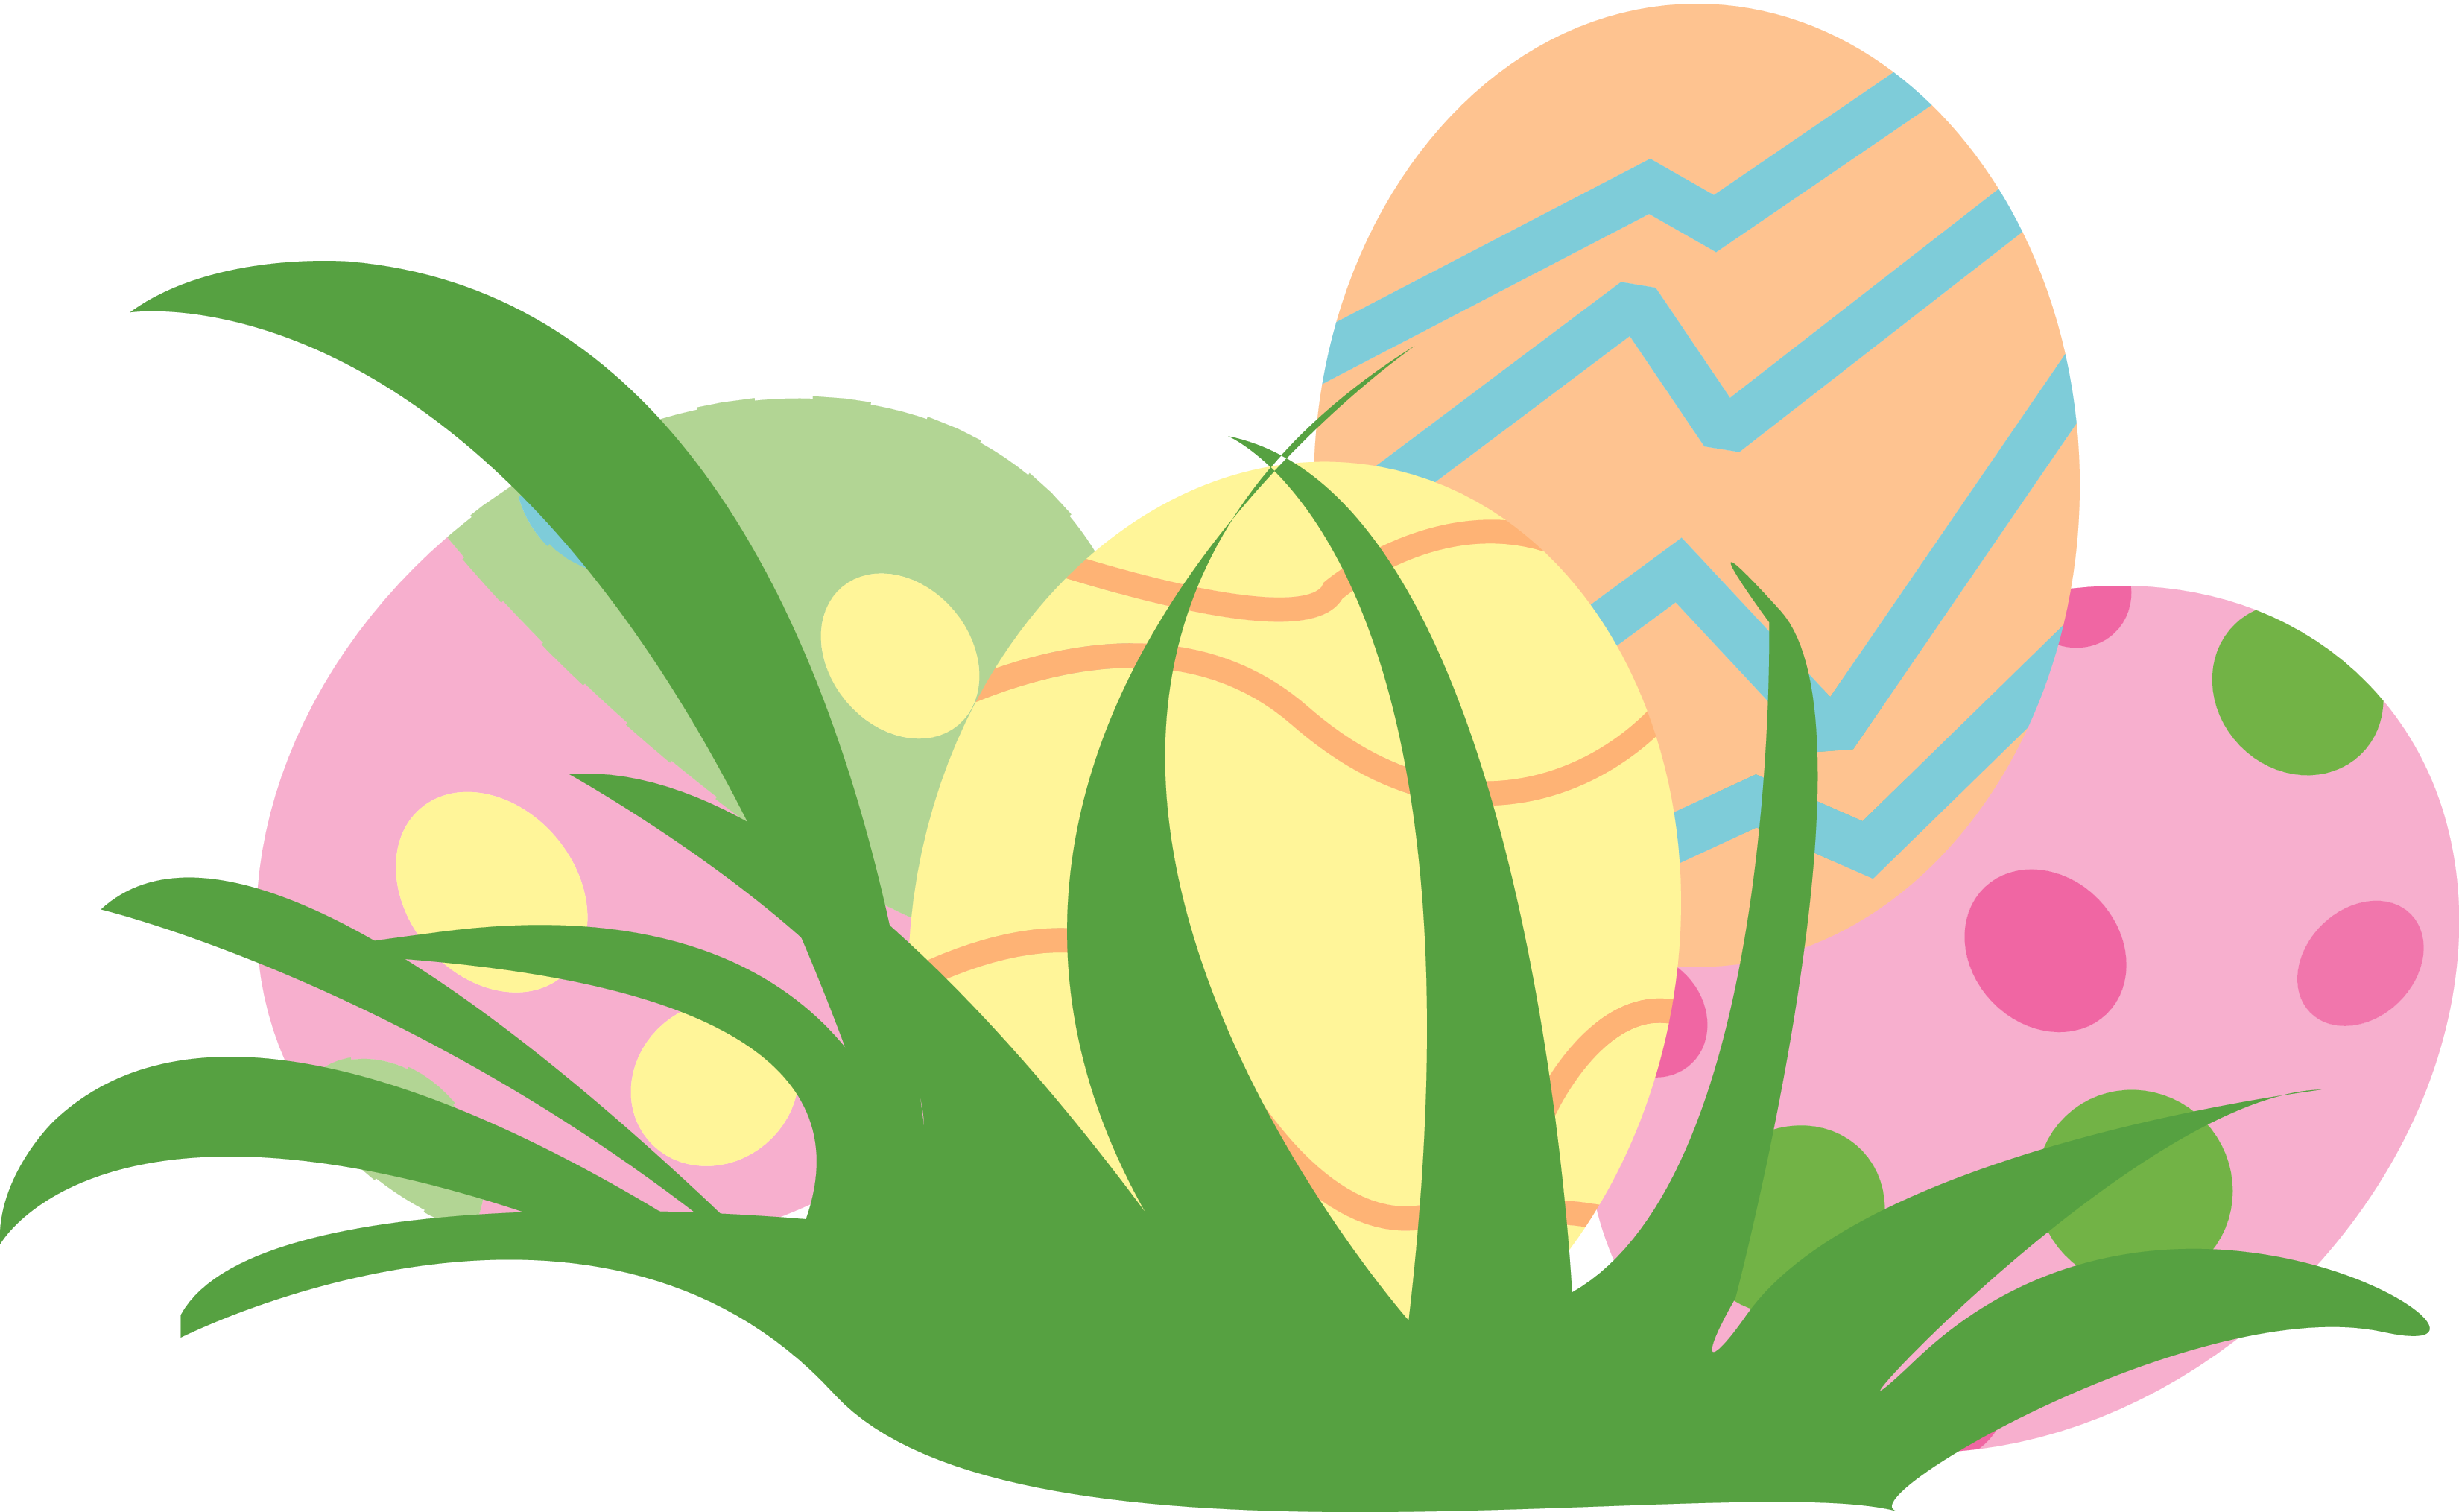 Easter egg corner clipart graphic free stock Pin by denise ernst on Easter/Spring | Pinterest | Easter and Cards graphic free stock